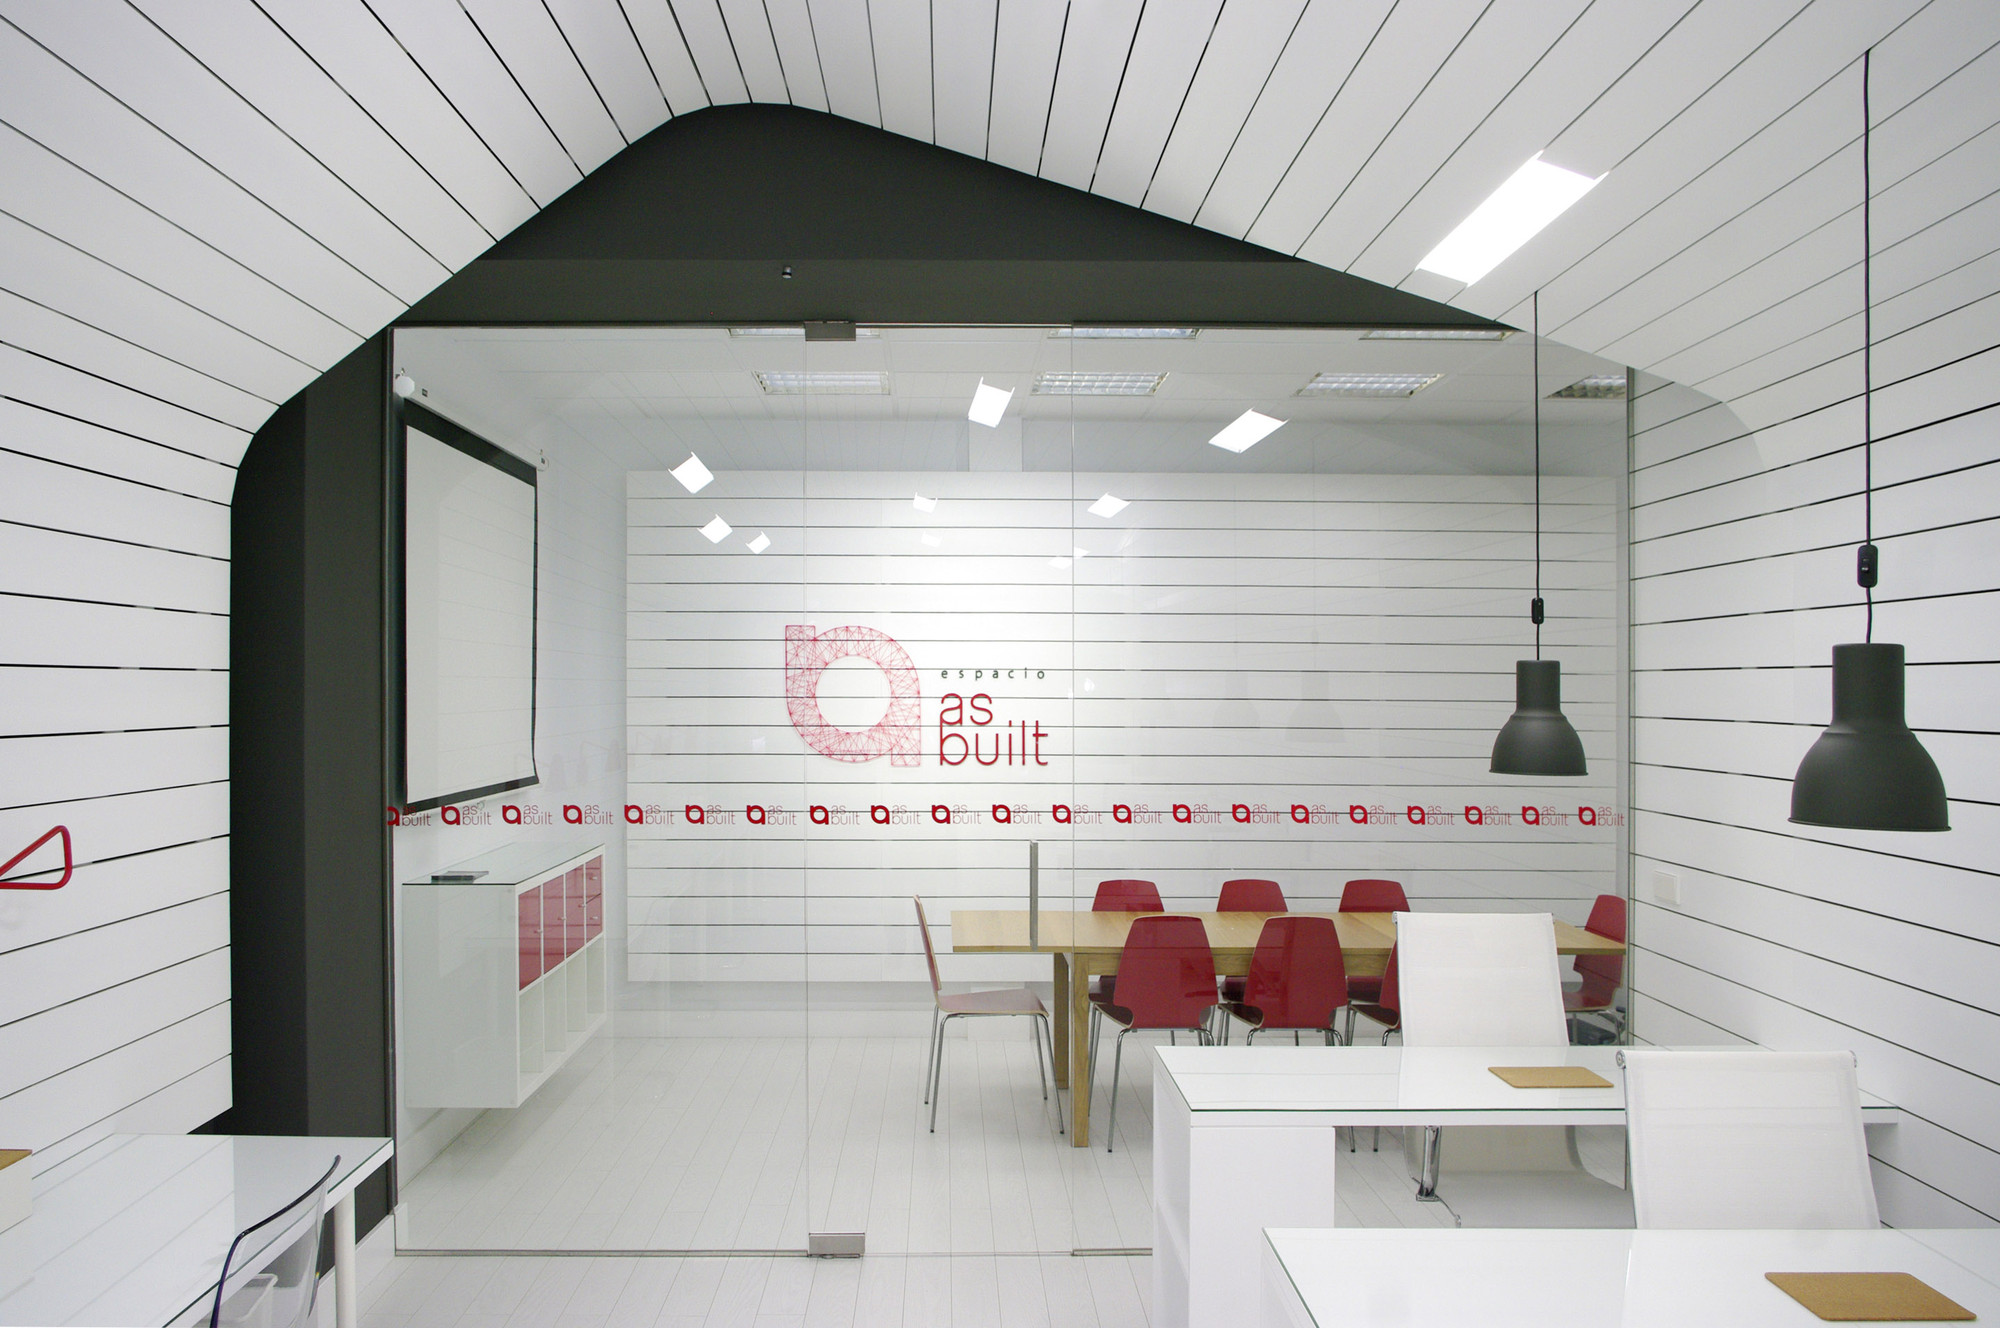 Architecture Office Studio office for architecture studio and coworking space / as – built